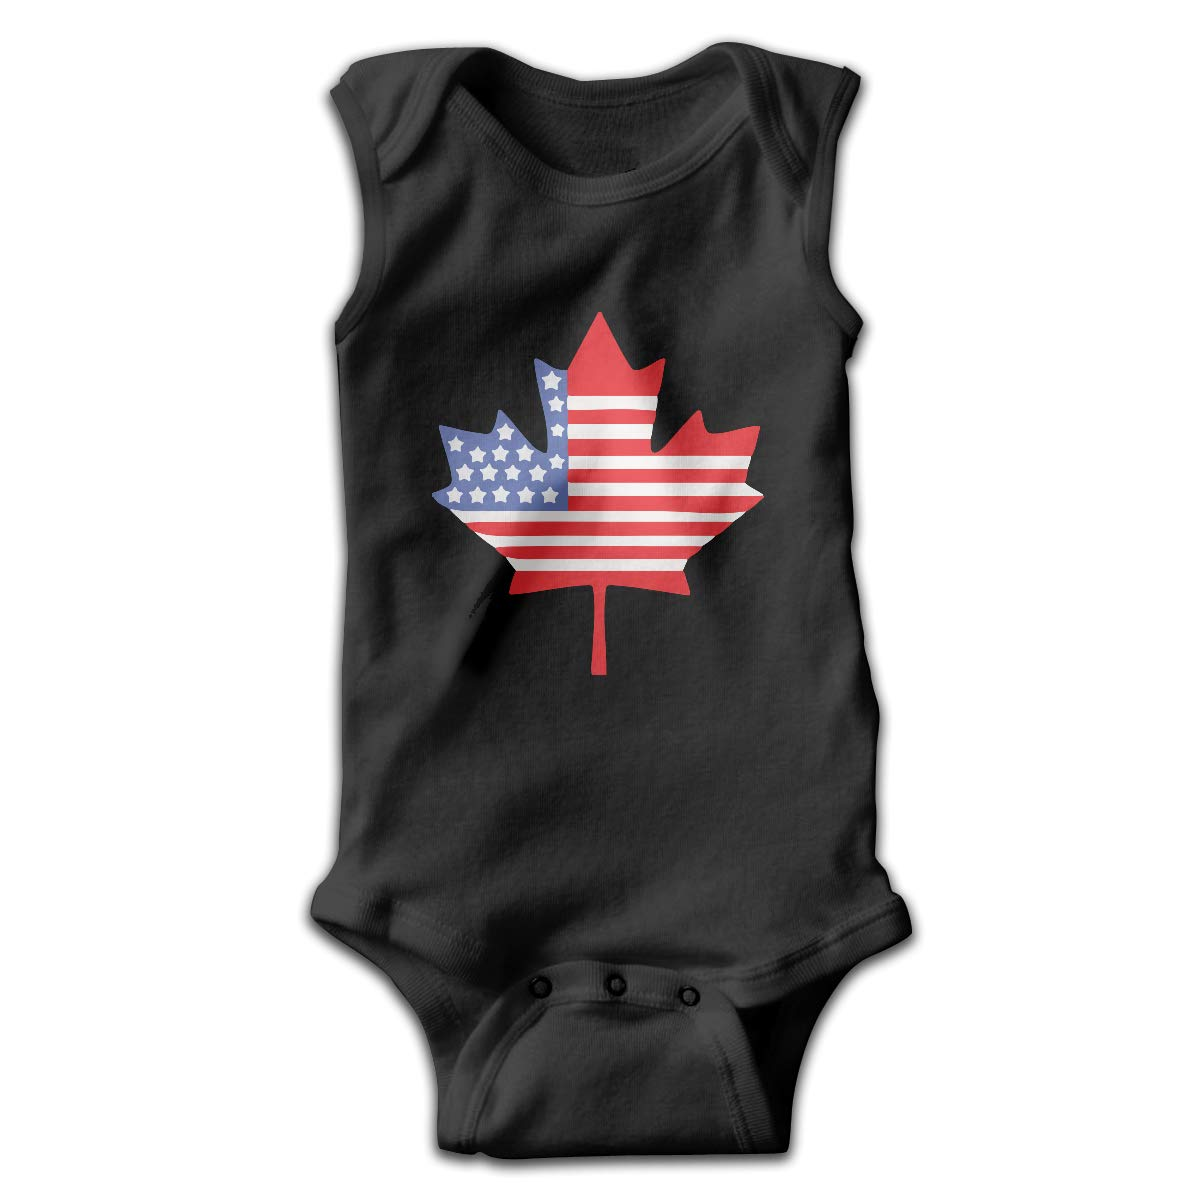 MMSSsJQ6 Canadian American Flag Baby Newborn Crawling Clothes Sleeveless Rompers Romper Jumpsuit